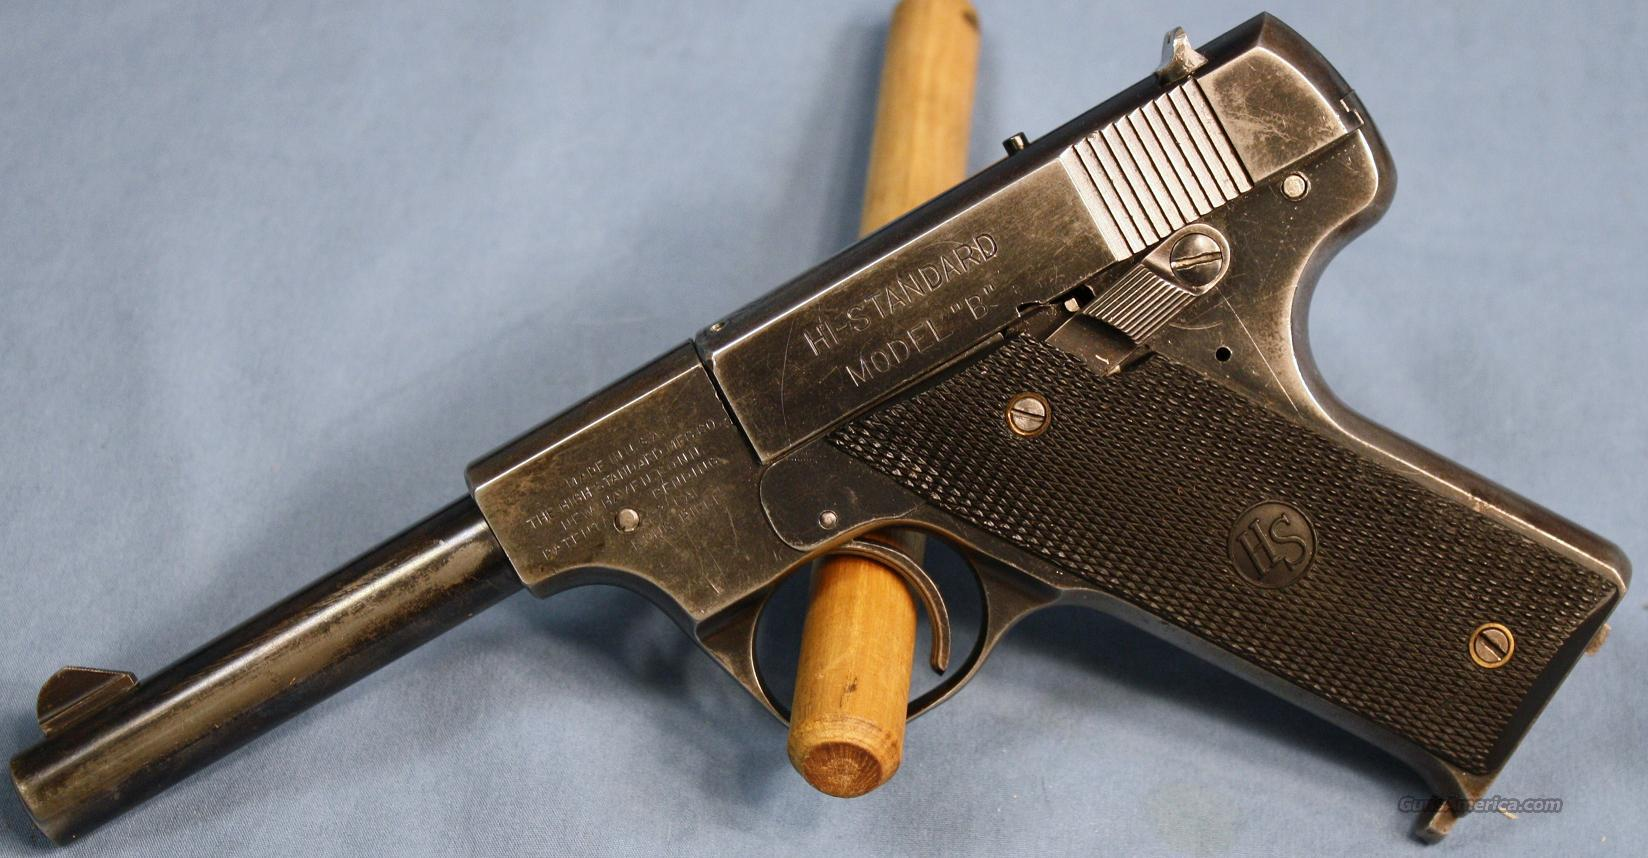 High Standard Model B Semi-Automatic Pistol Pre-WWII .22LR  Guns > Pistols > High Standard Pistols